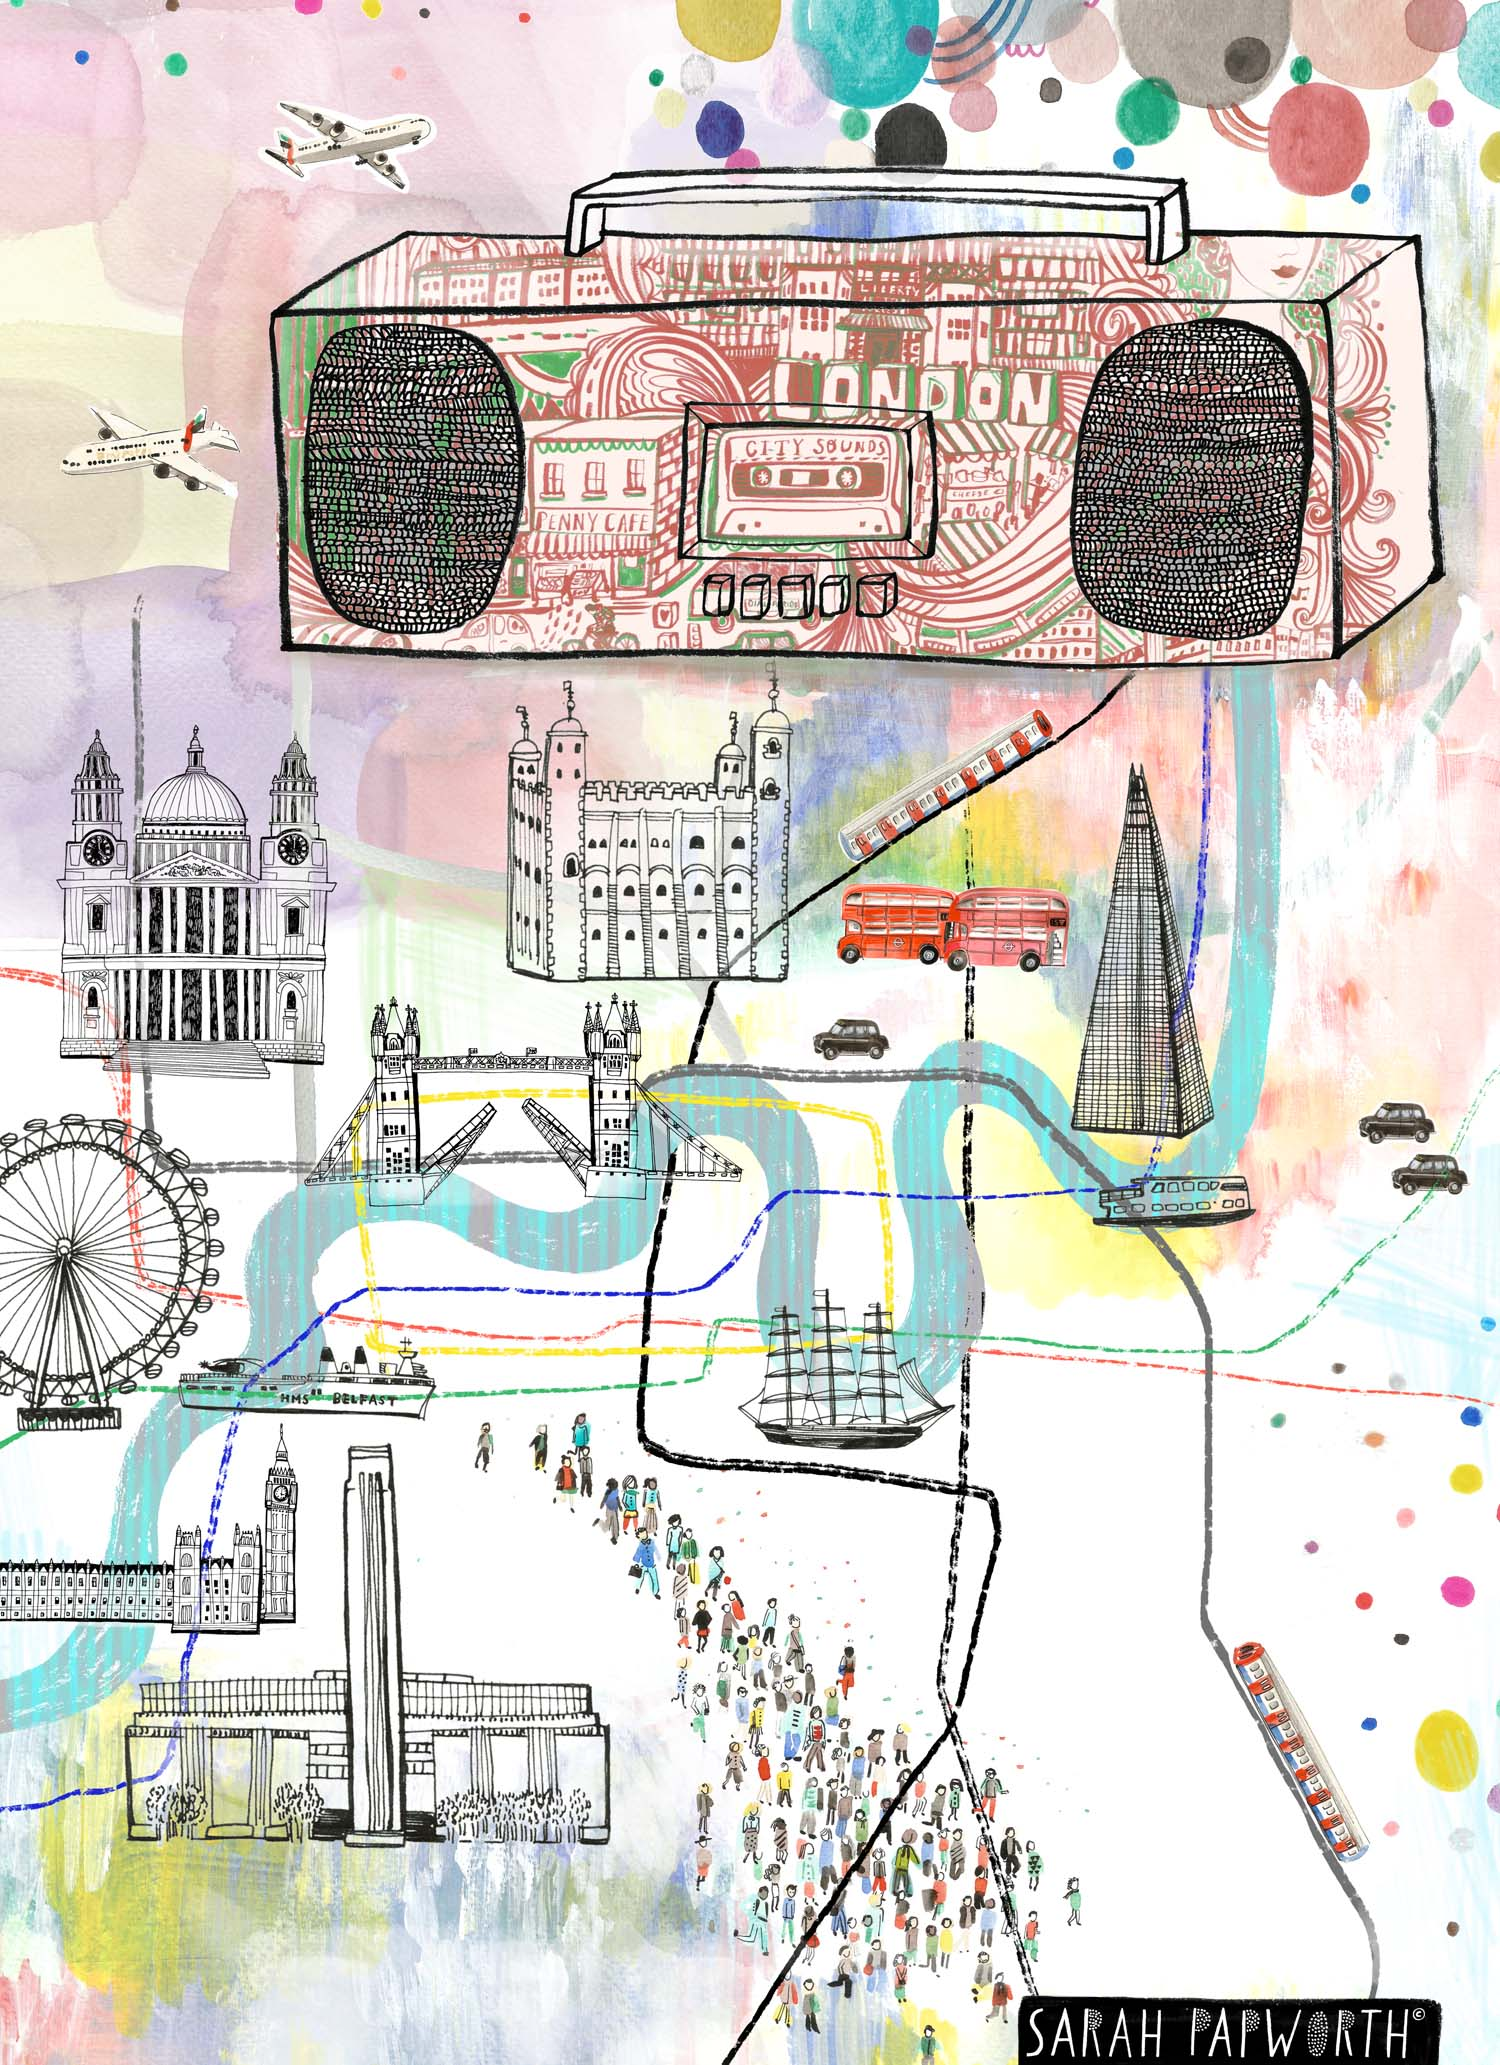 london map editorial illustration sounds of the city sarah papworth.jpg